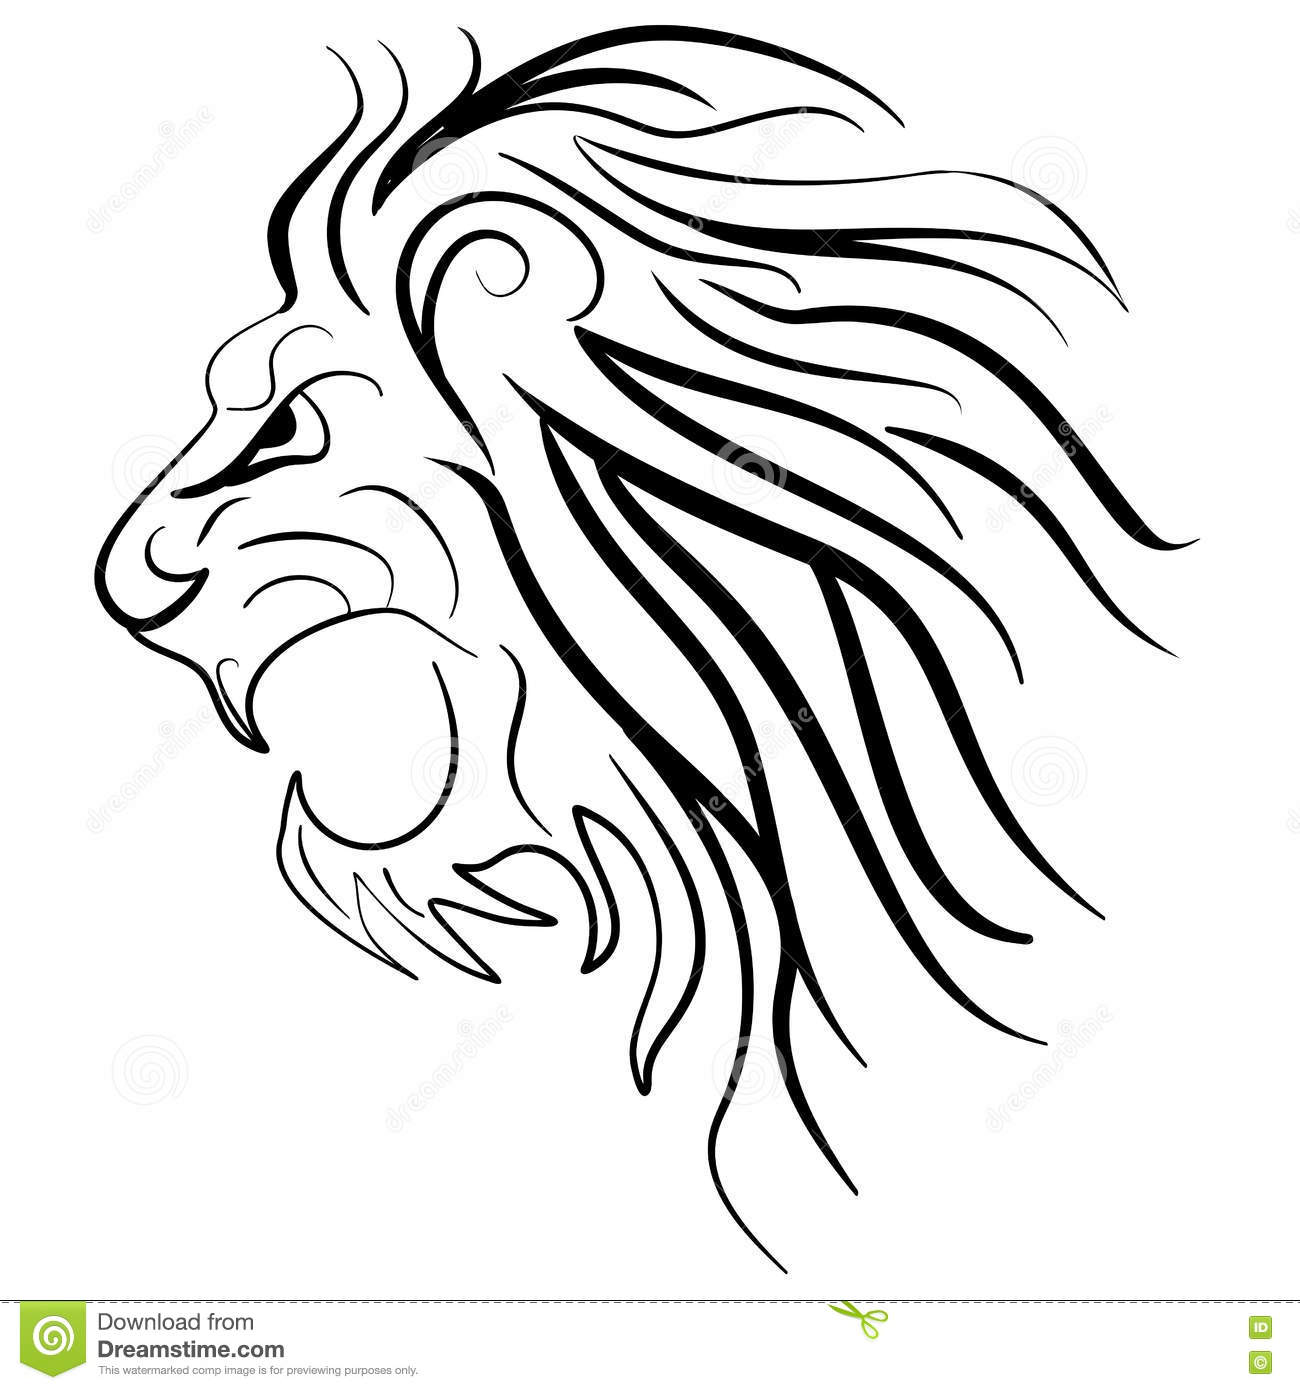 Graphic Silhouette Roaring Lion Stock Vector Illustration Of Icon